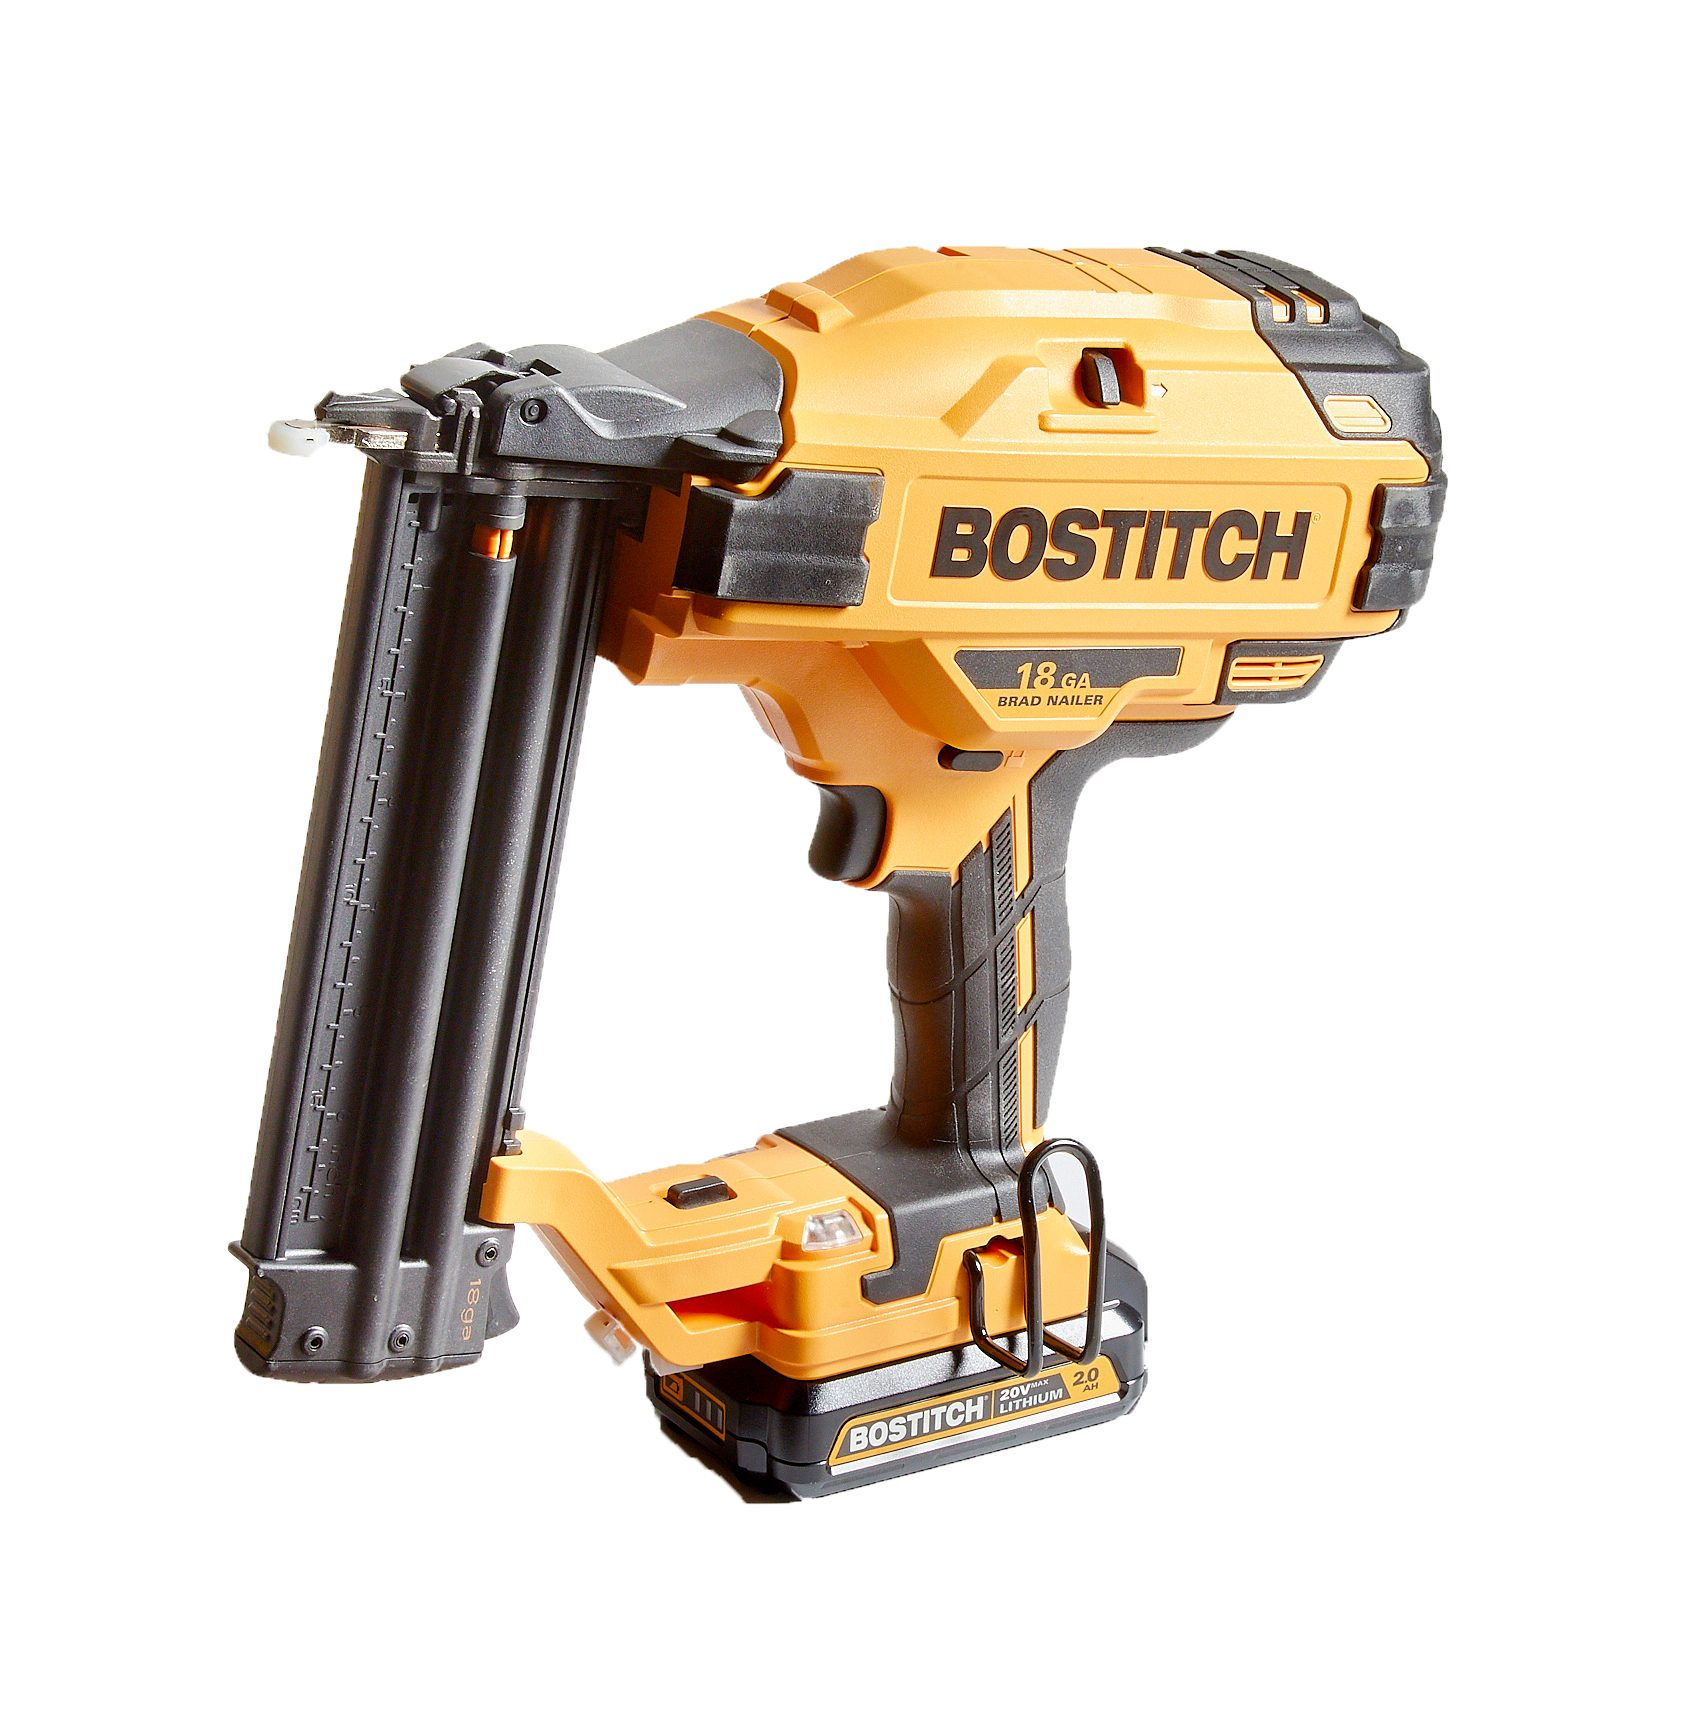 Bostitch Brad Nailer | Construction Pro Tips